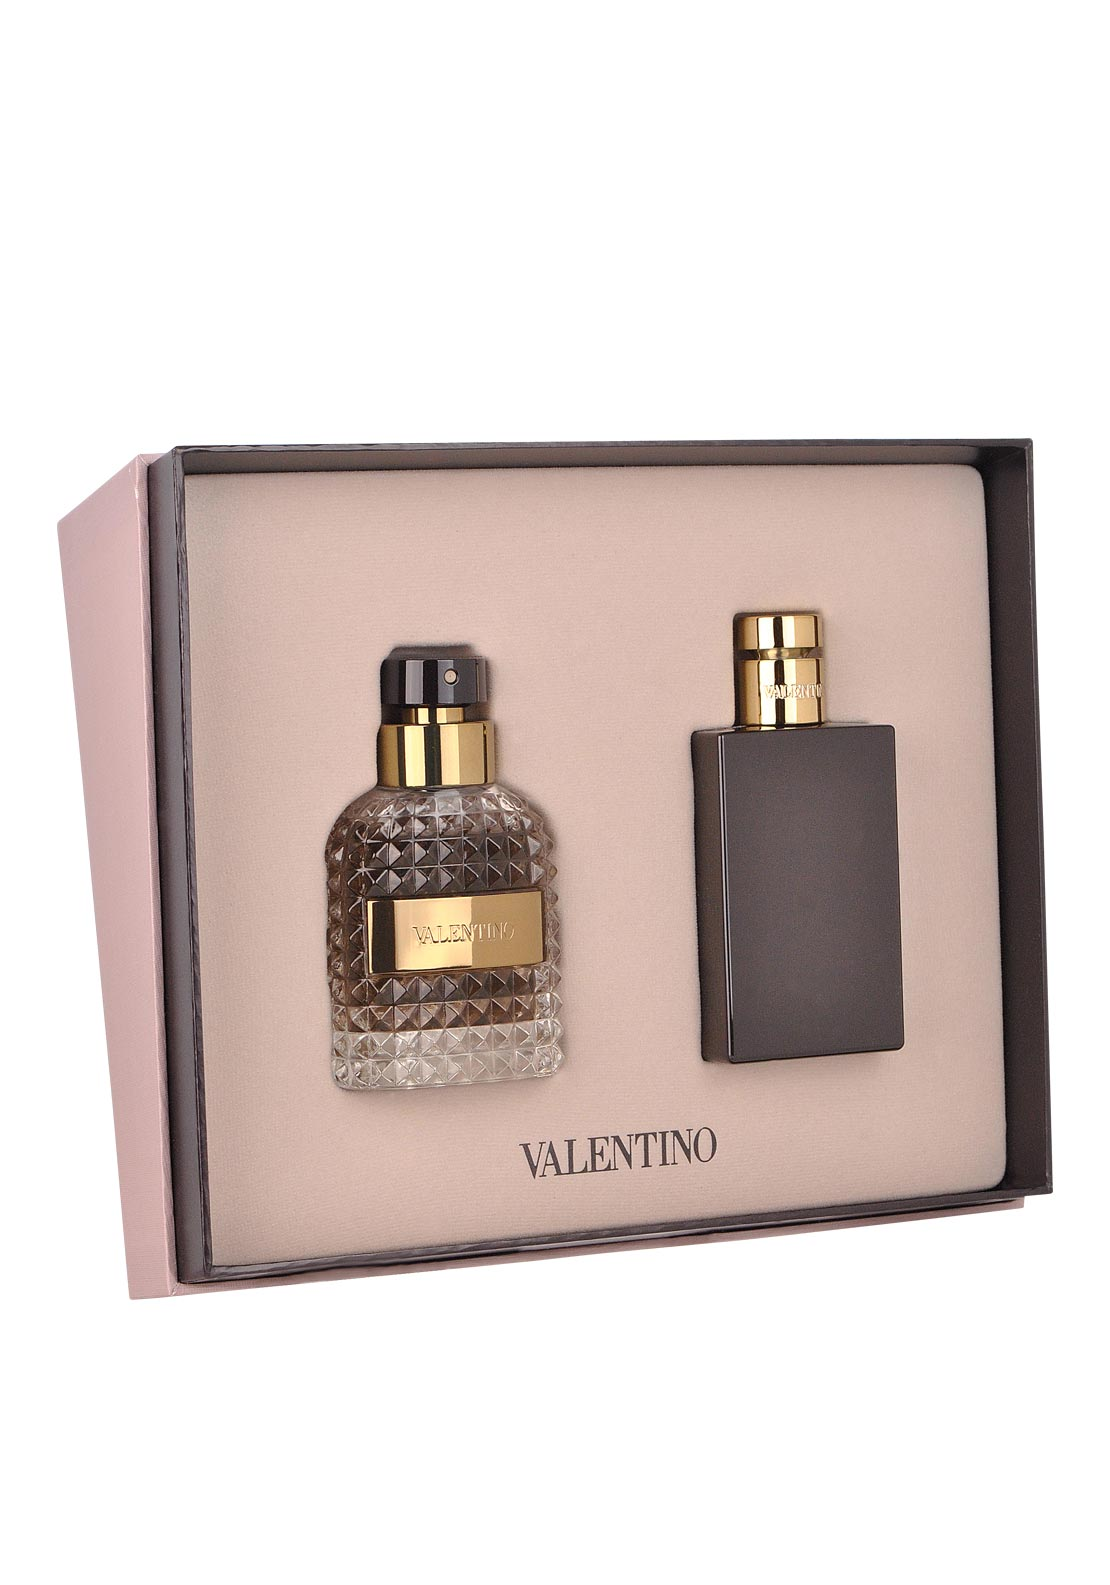 Valentino Uomo Eau De Toilette Gift Set for Men, 50ml